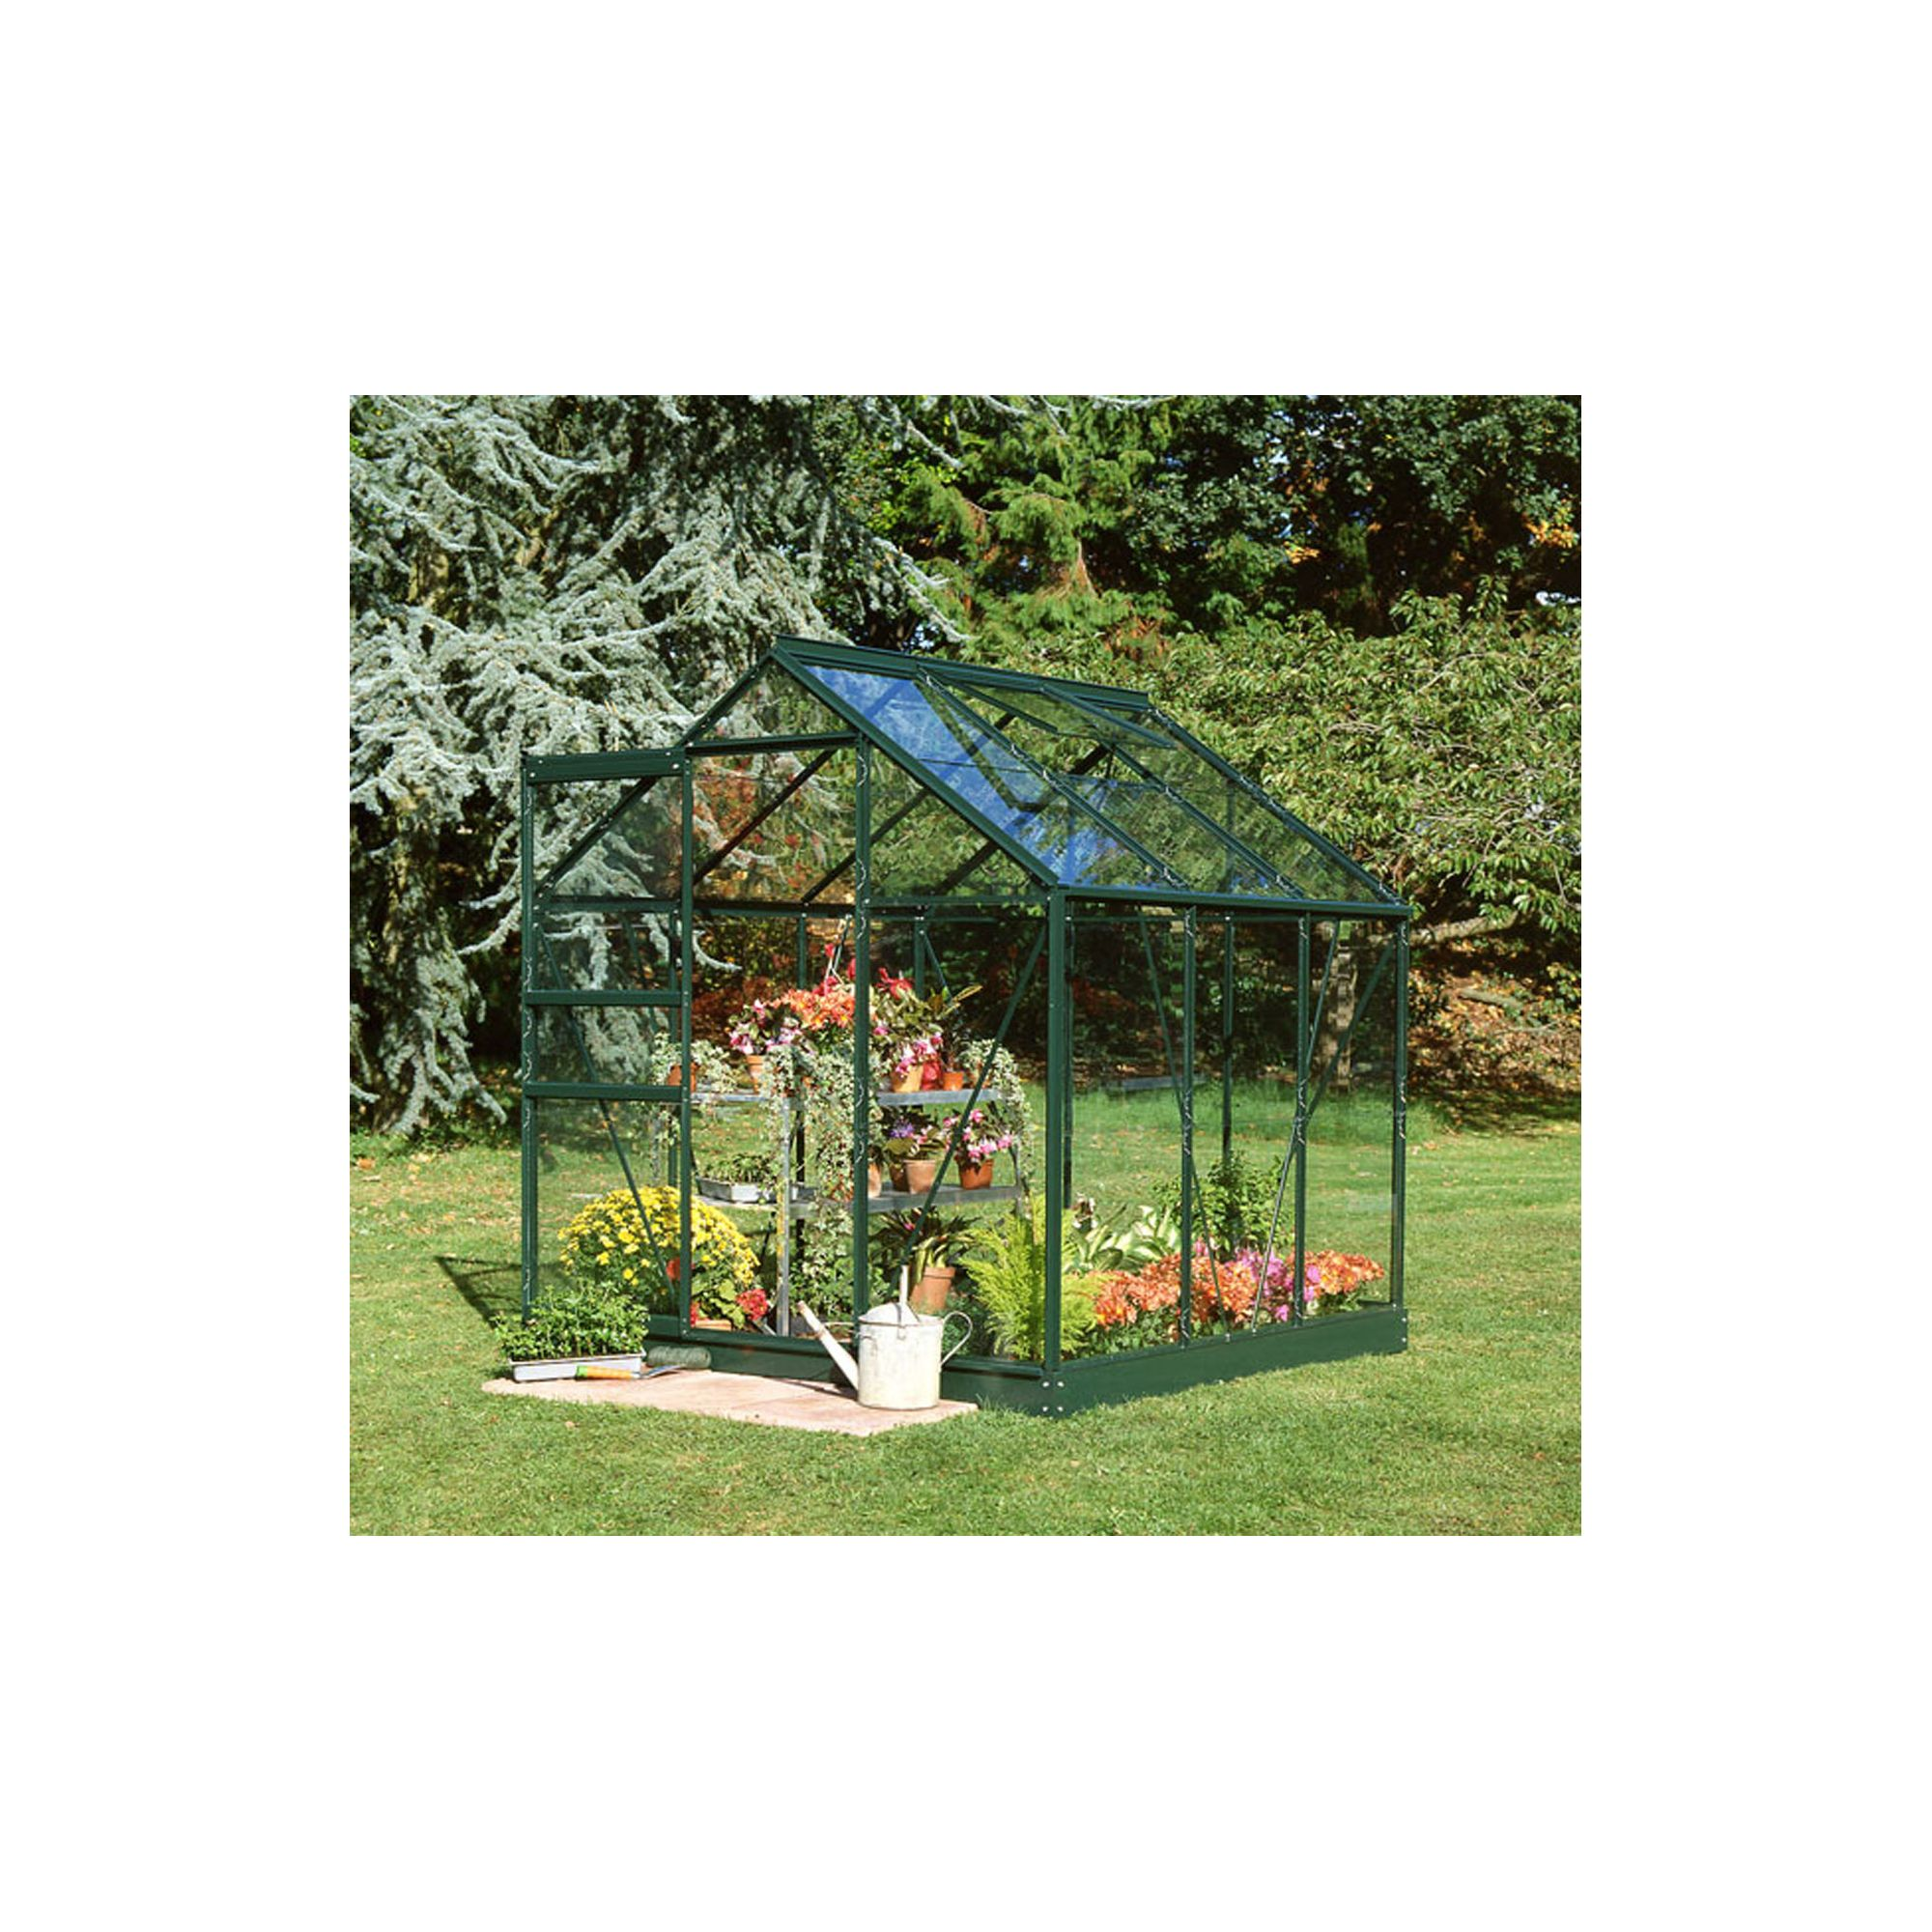 Halls 6x6 Popular Greenframe Greenhouse + Base - Toughened Glass at Tesco Direct